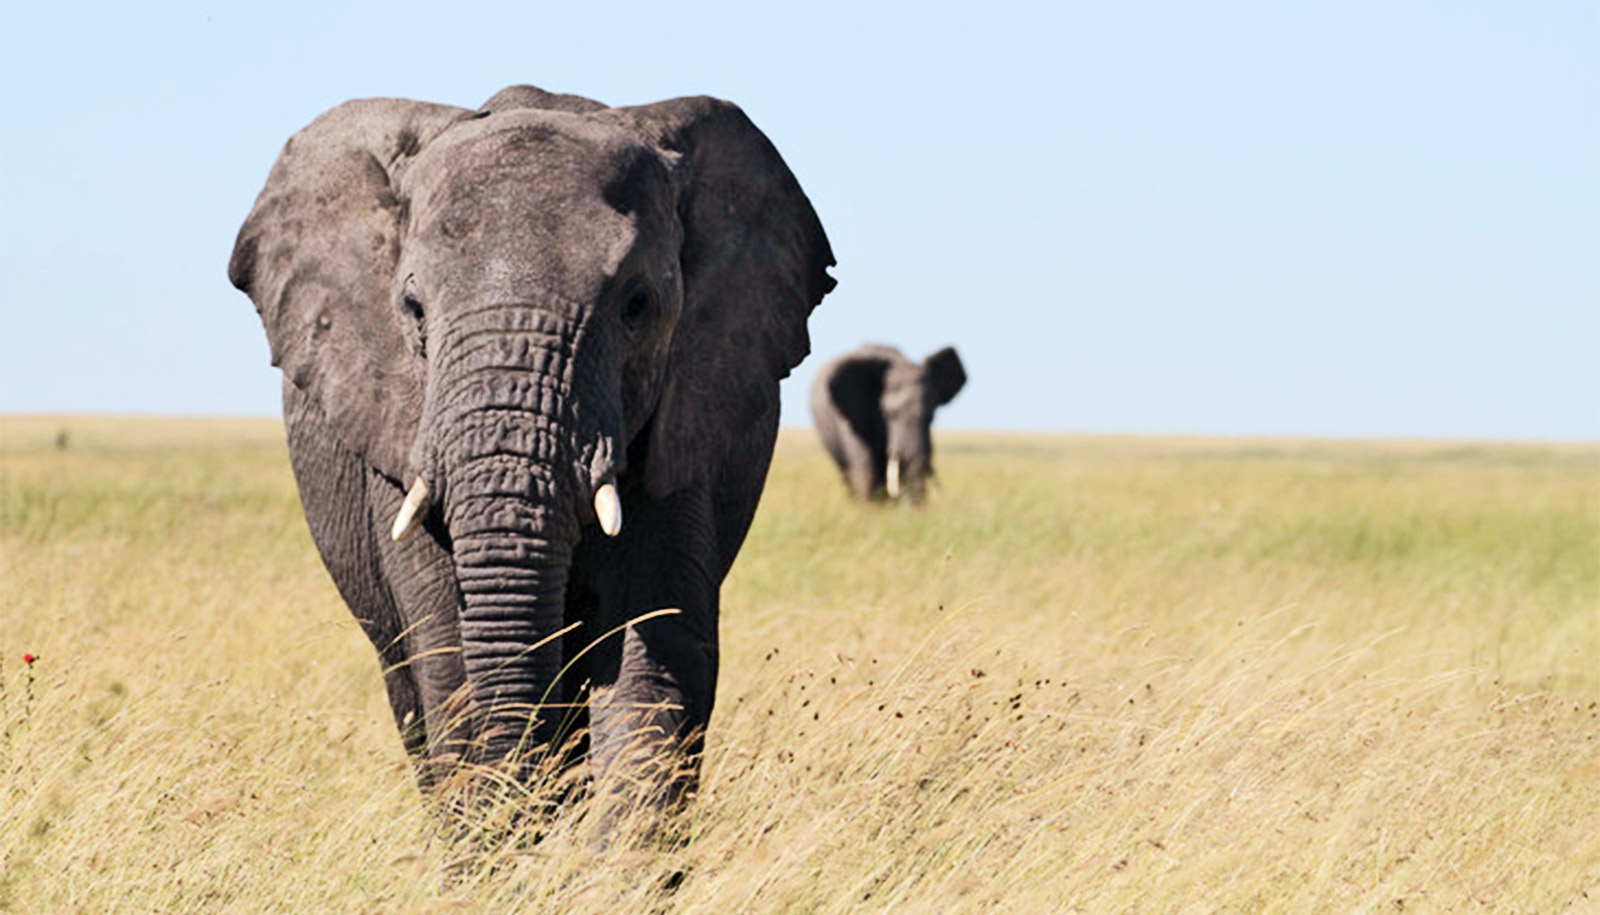 Wildlife corridors keep elephants connected by genes - Futurity